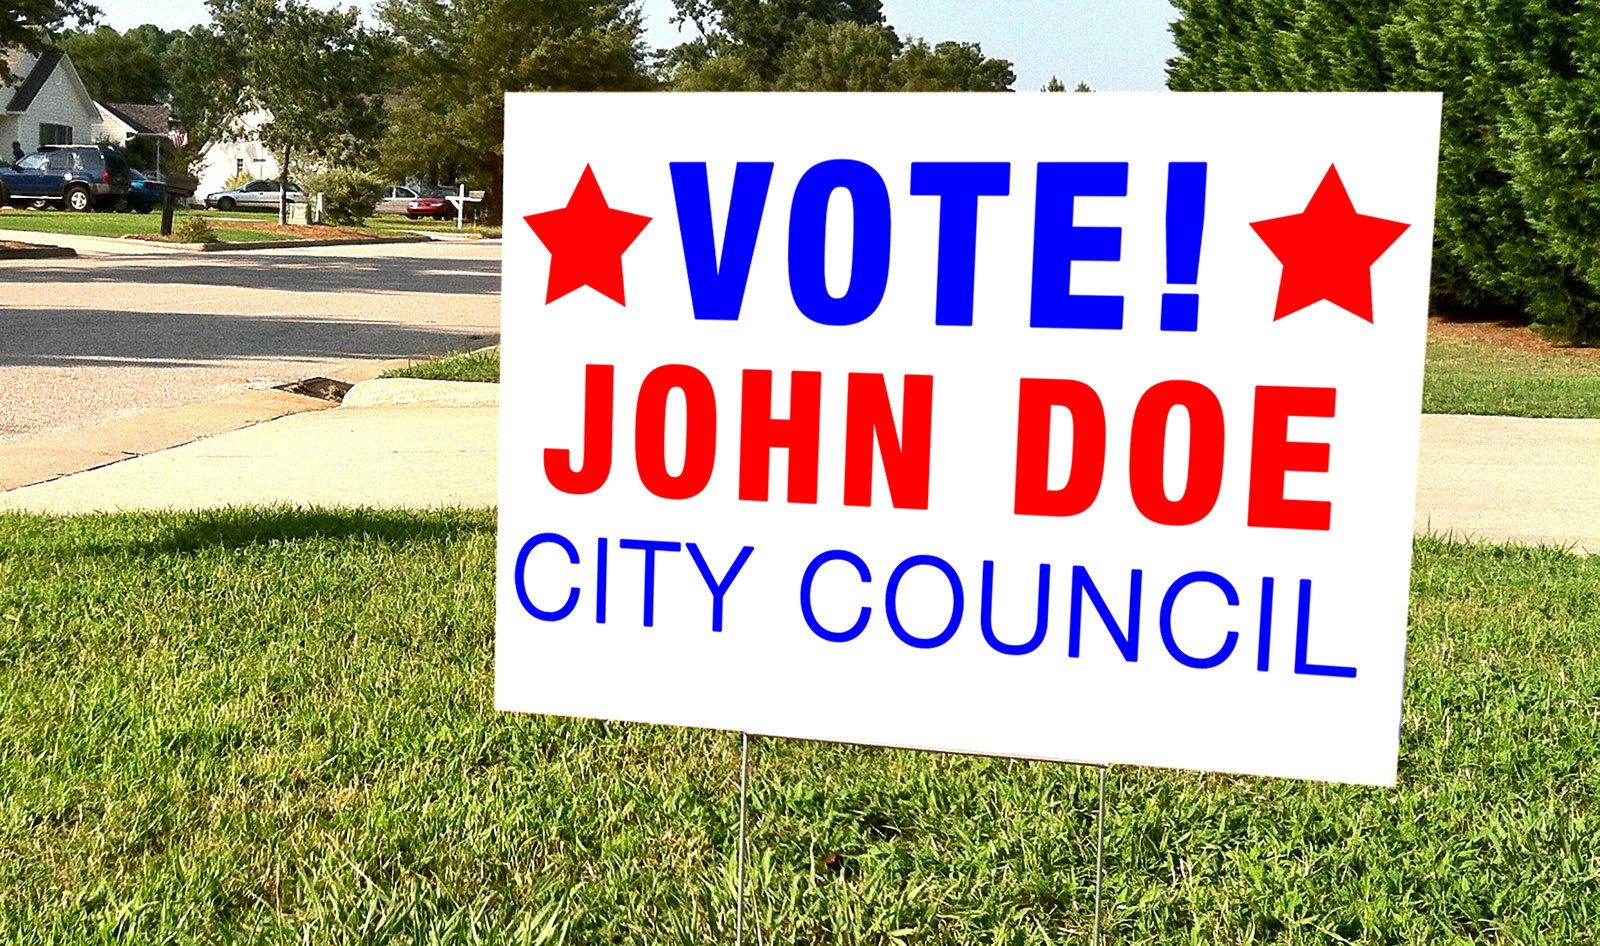 John Doe Political Yard sign in residential yard